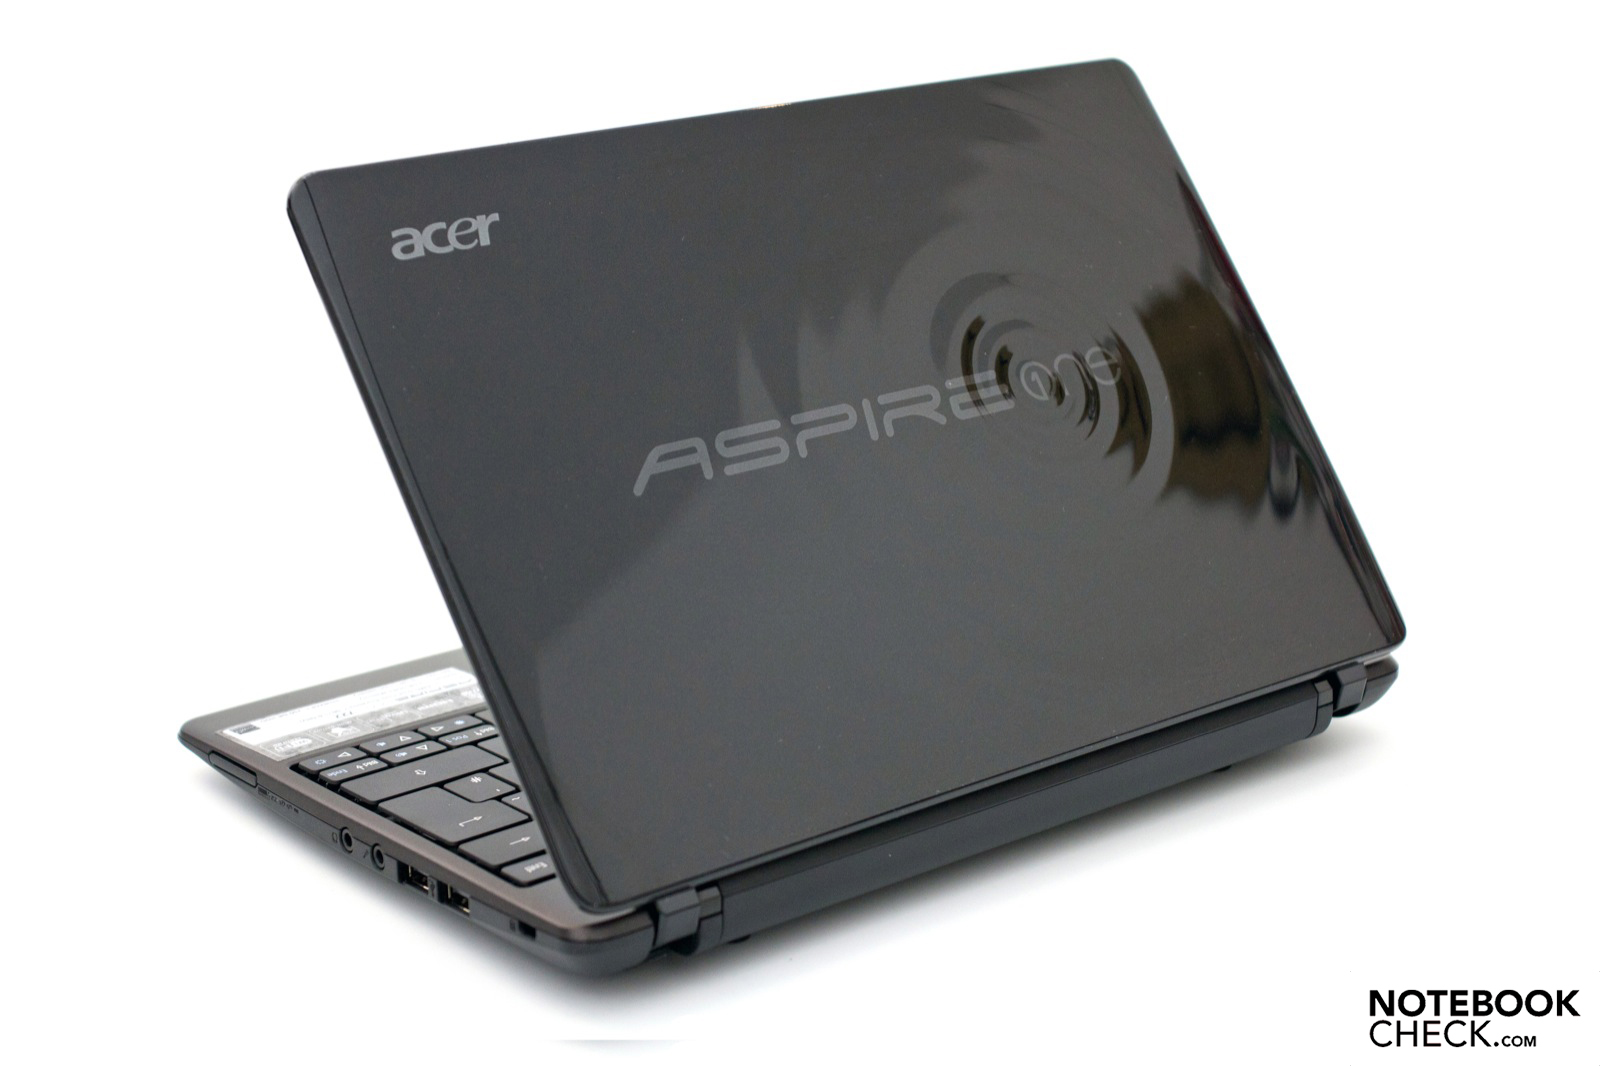 acer aspire one 722 bios update